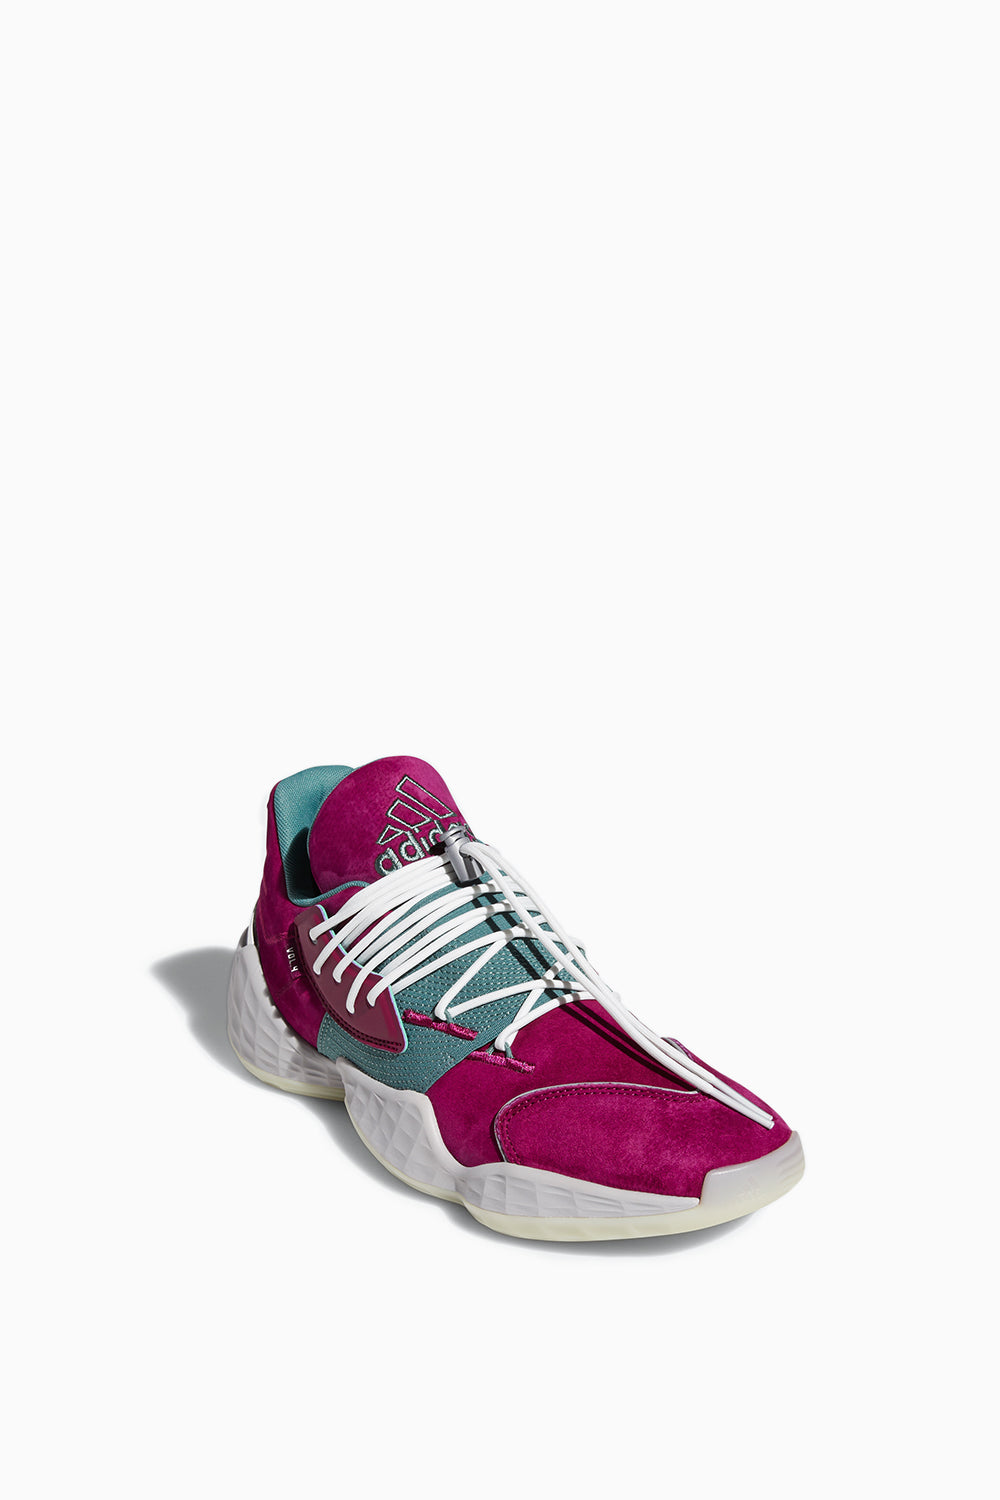 Harden Vol 4 / powerberry